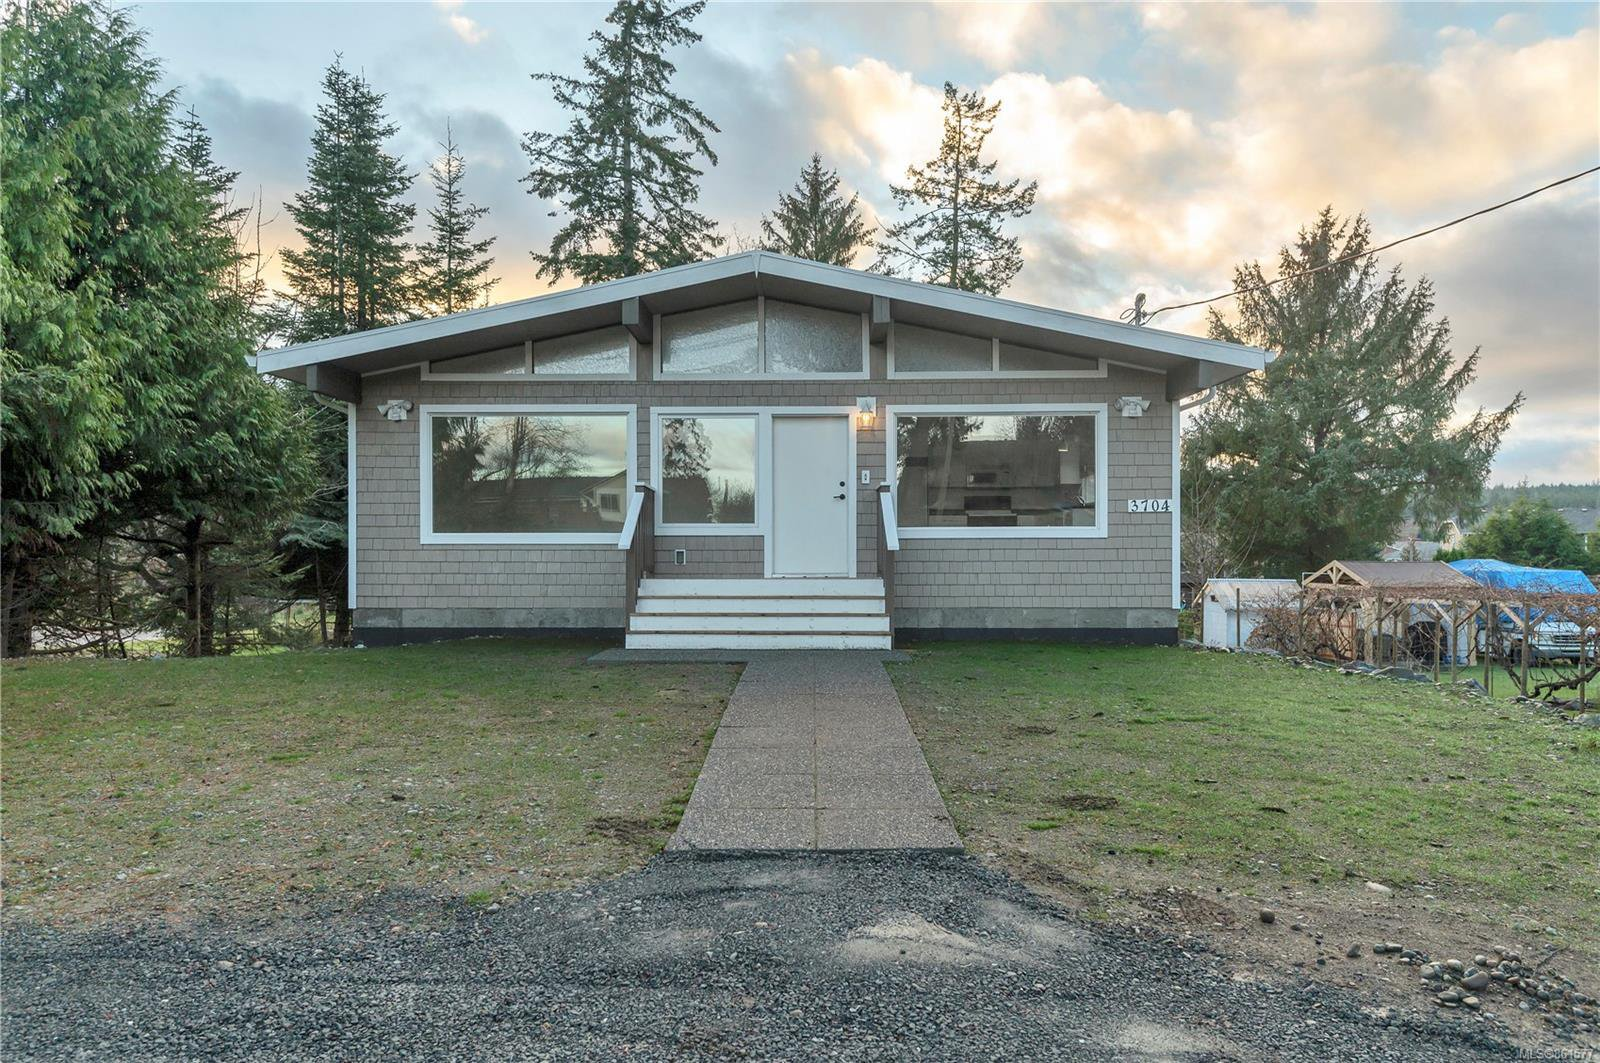 Main Photo: 3704 S Island Hwy in : CR Campbell River South House for sale (Campbell River)  : MLS®# 861577